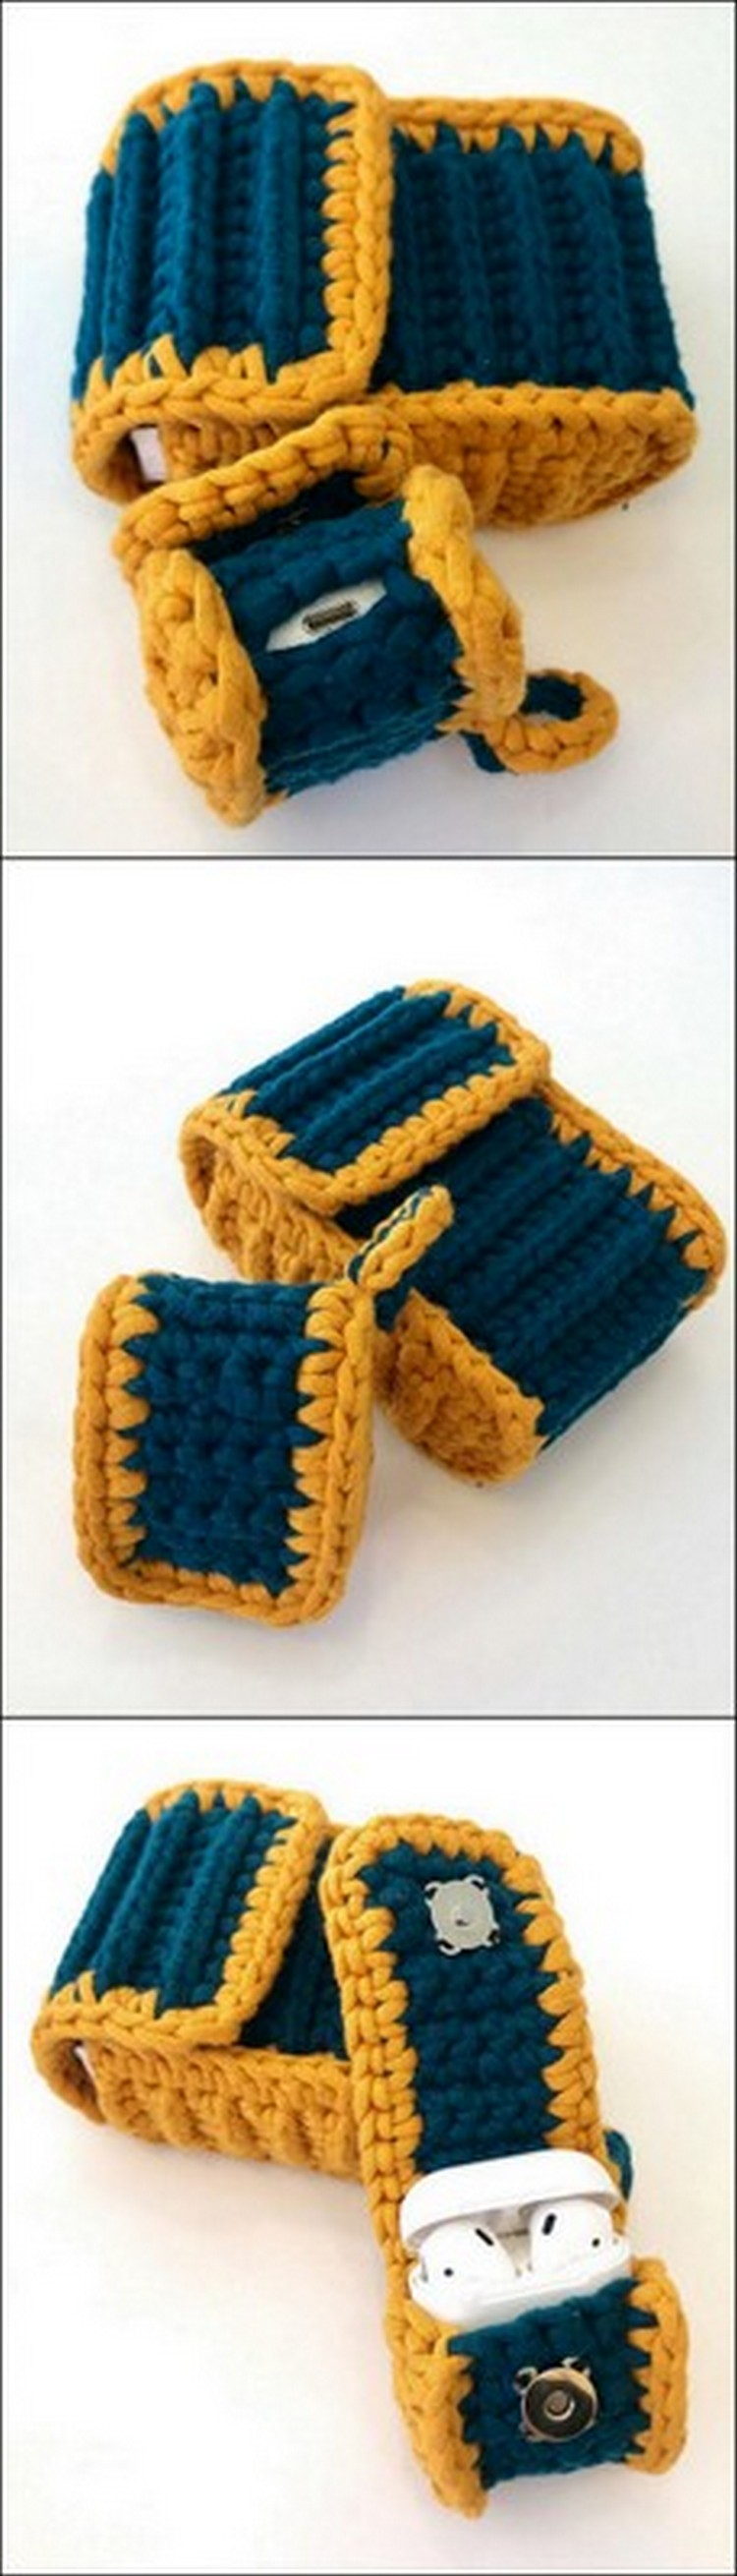 Simple Cover Free Crochet Pattern